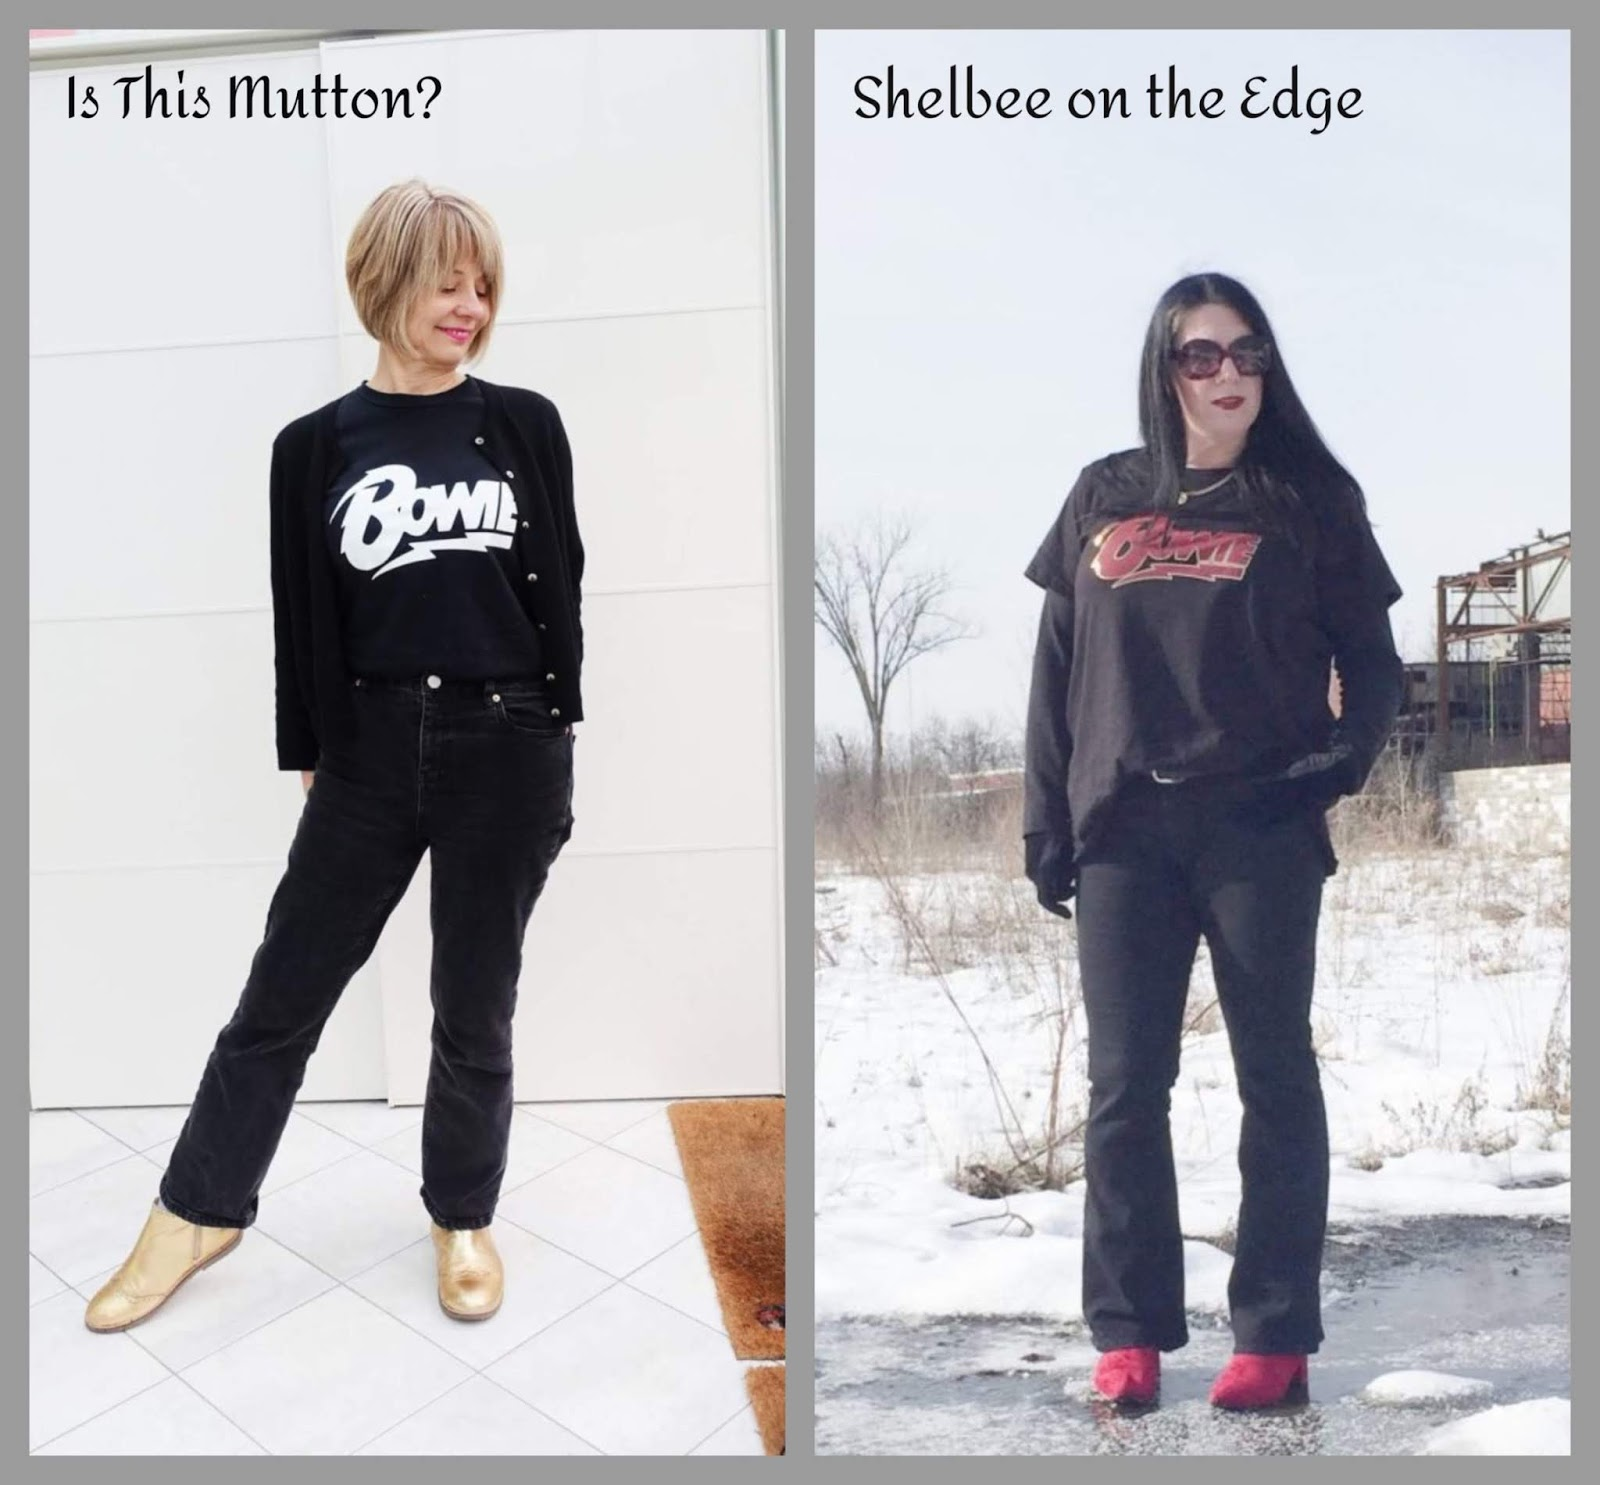 Two bloggers, similar outfit: take one Bowie tee and add jeans and boots